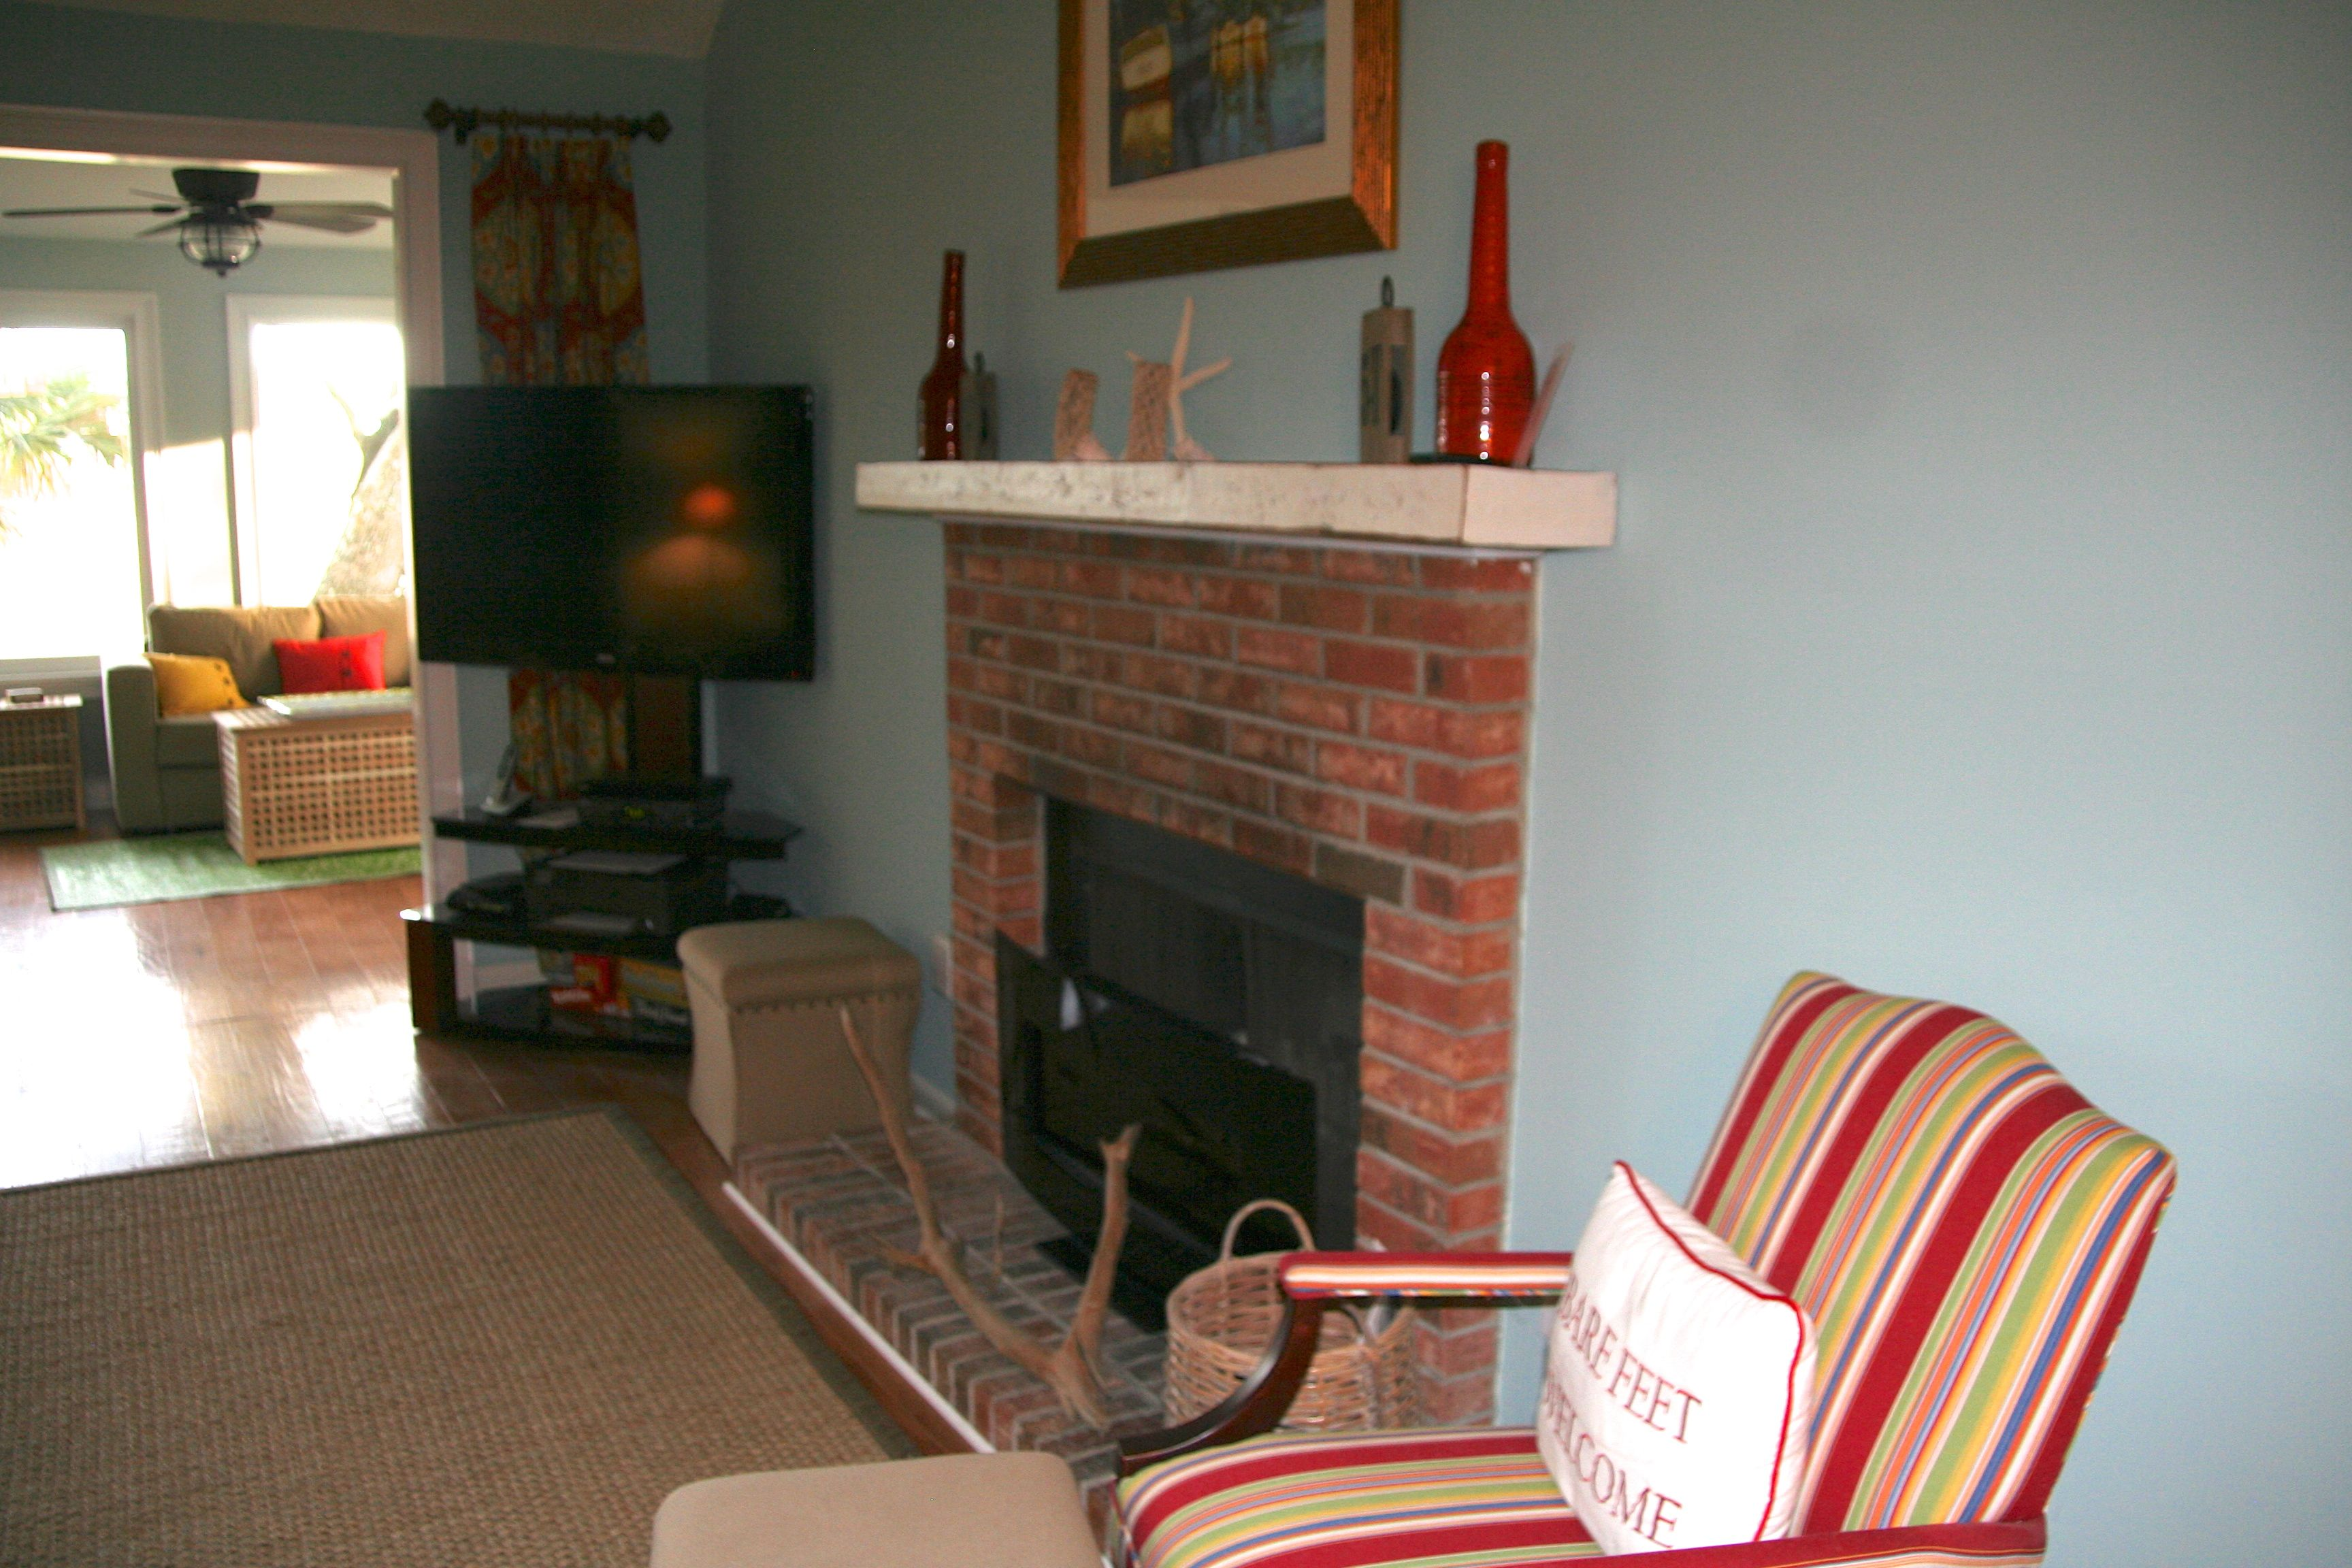 There is a large TV and fireplace and sun room.